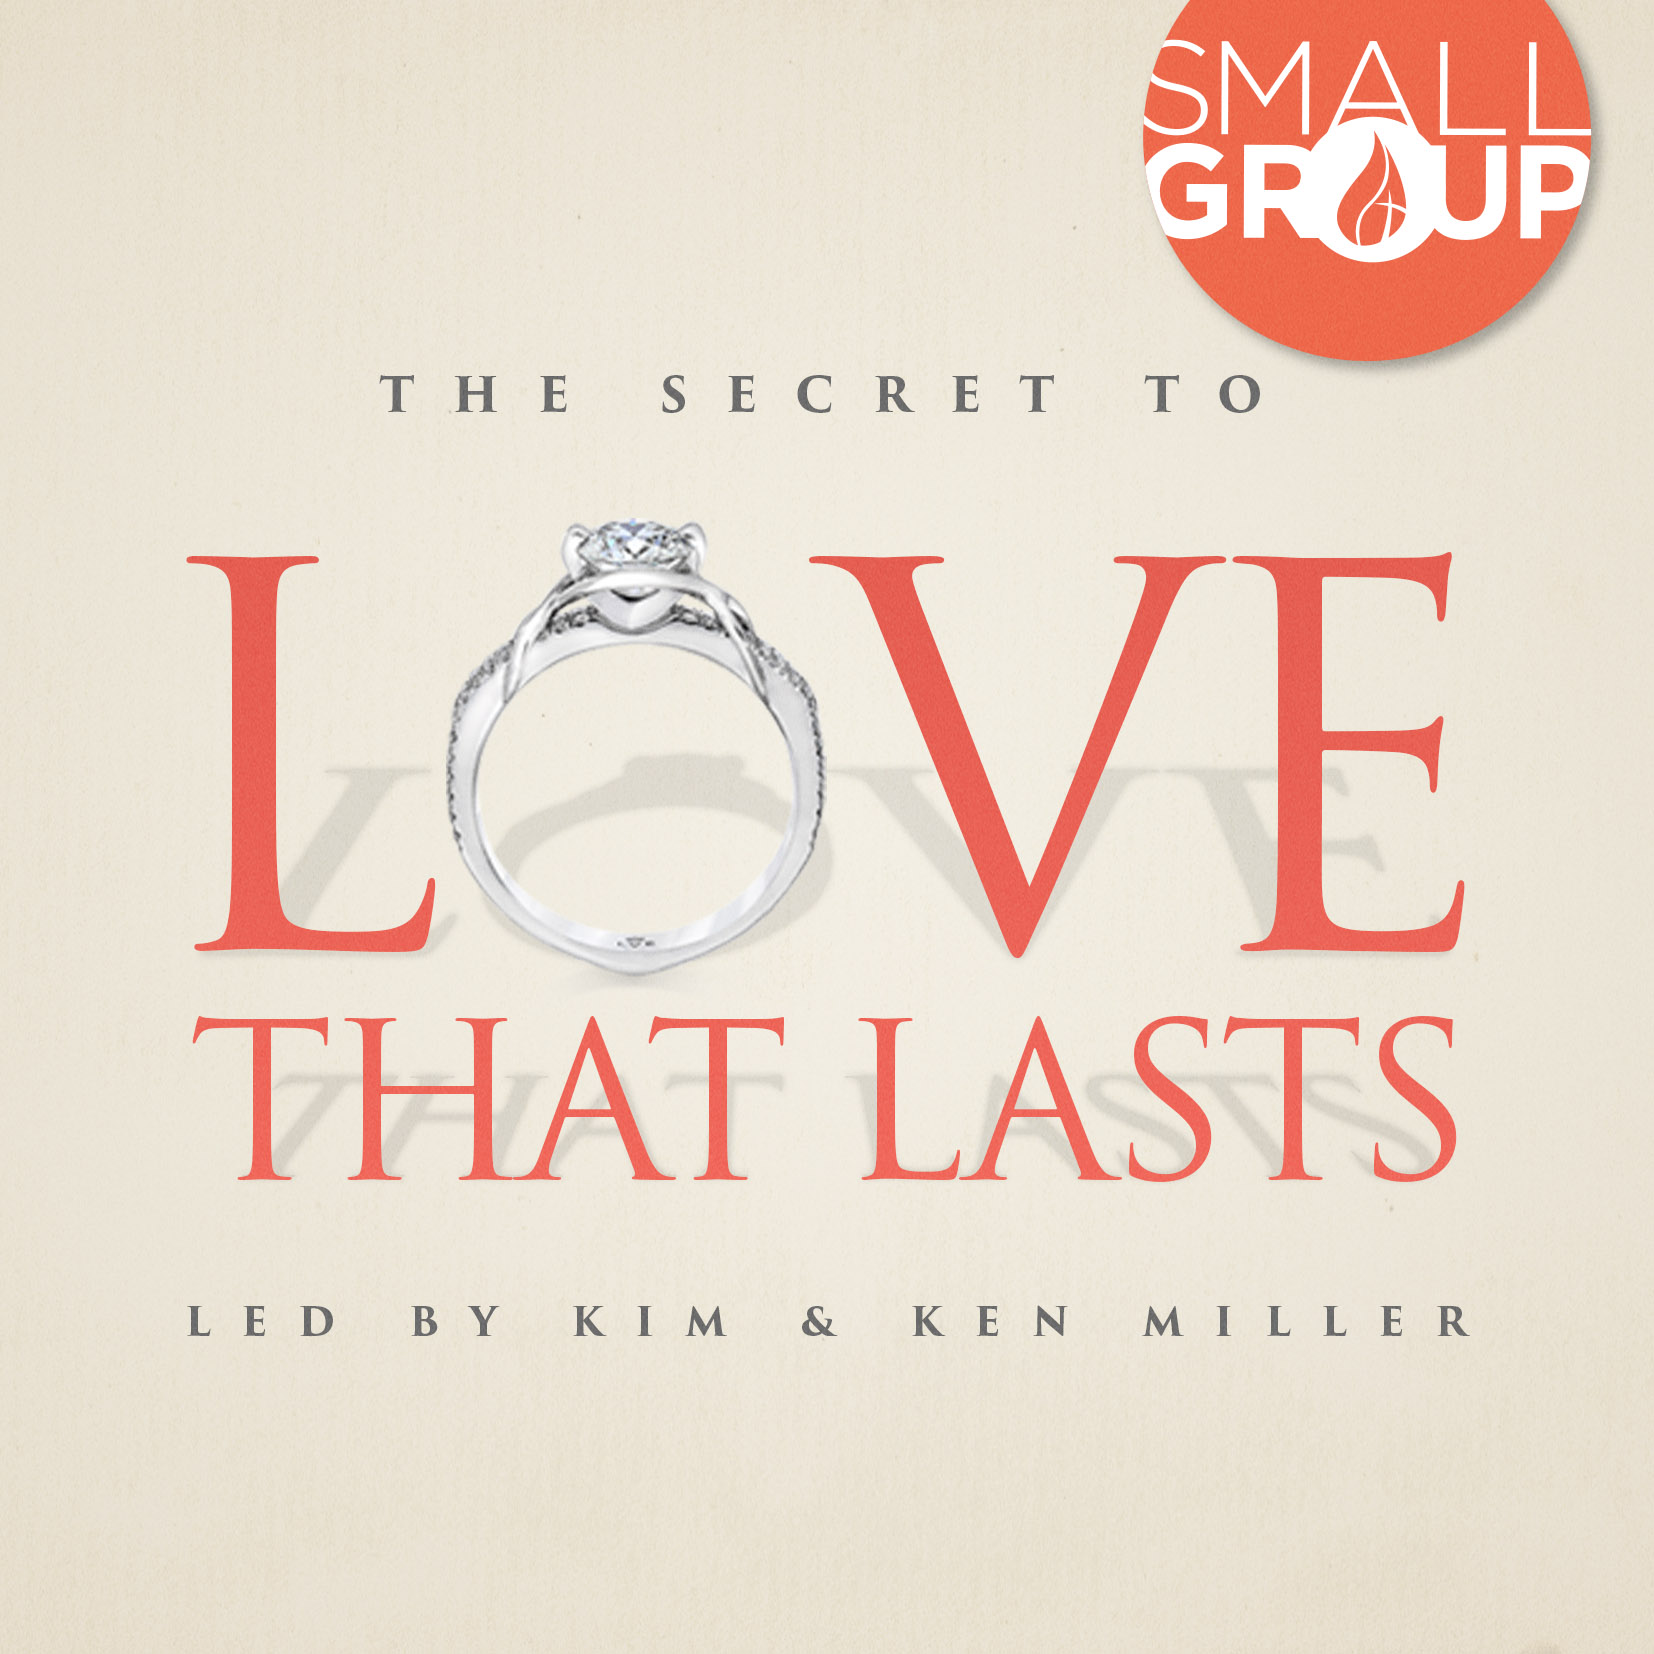 The secret to love that lasts registration